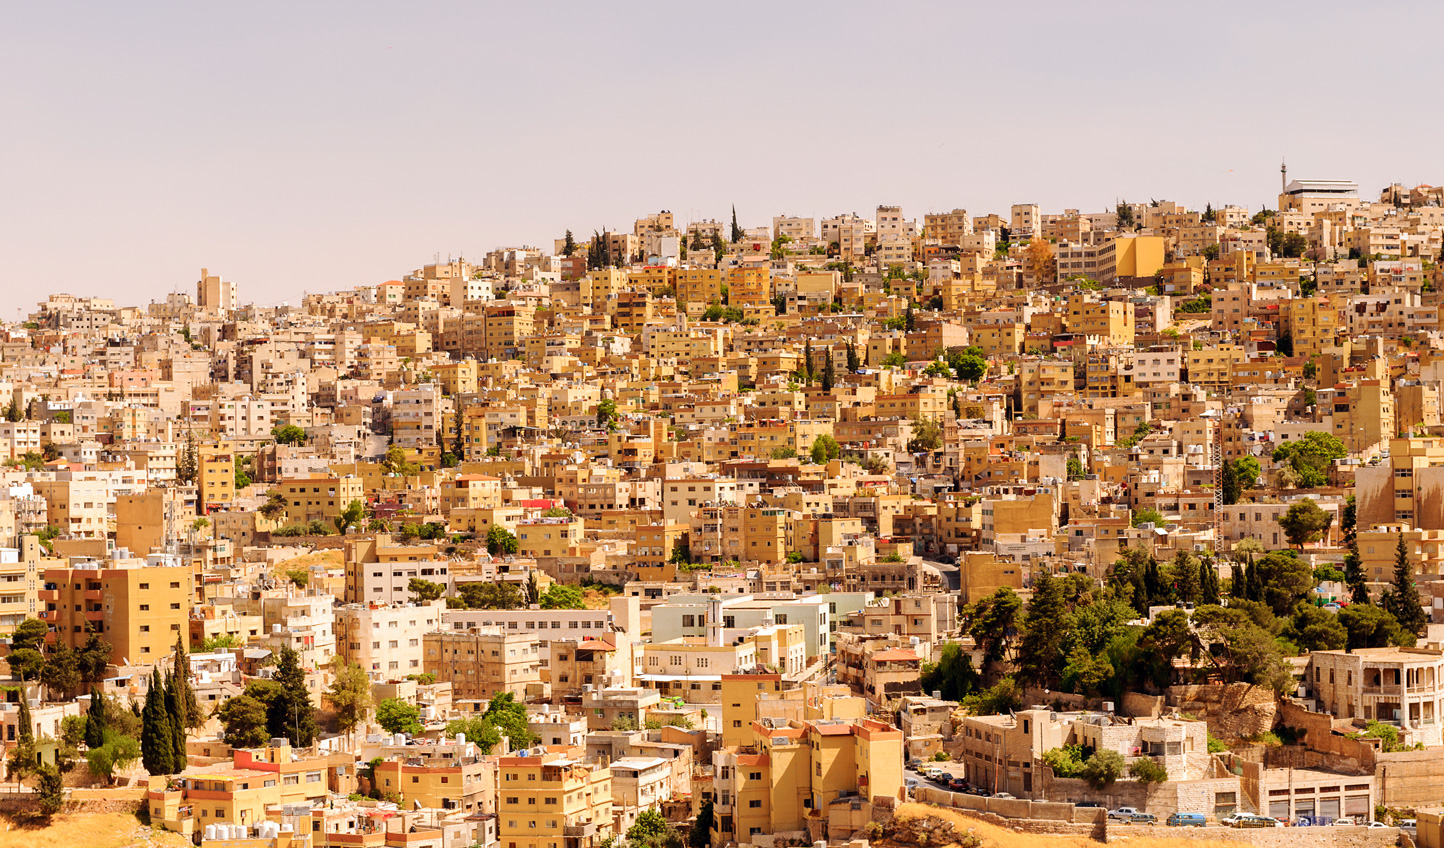 Navigate between old and new in Amman